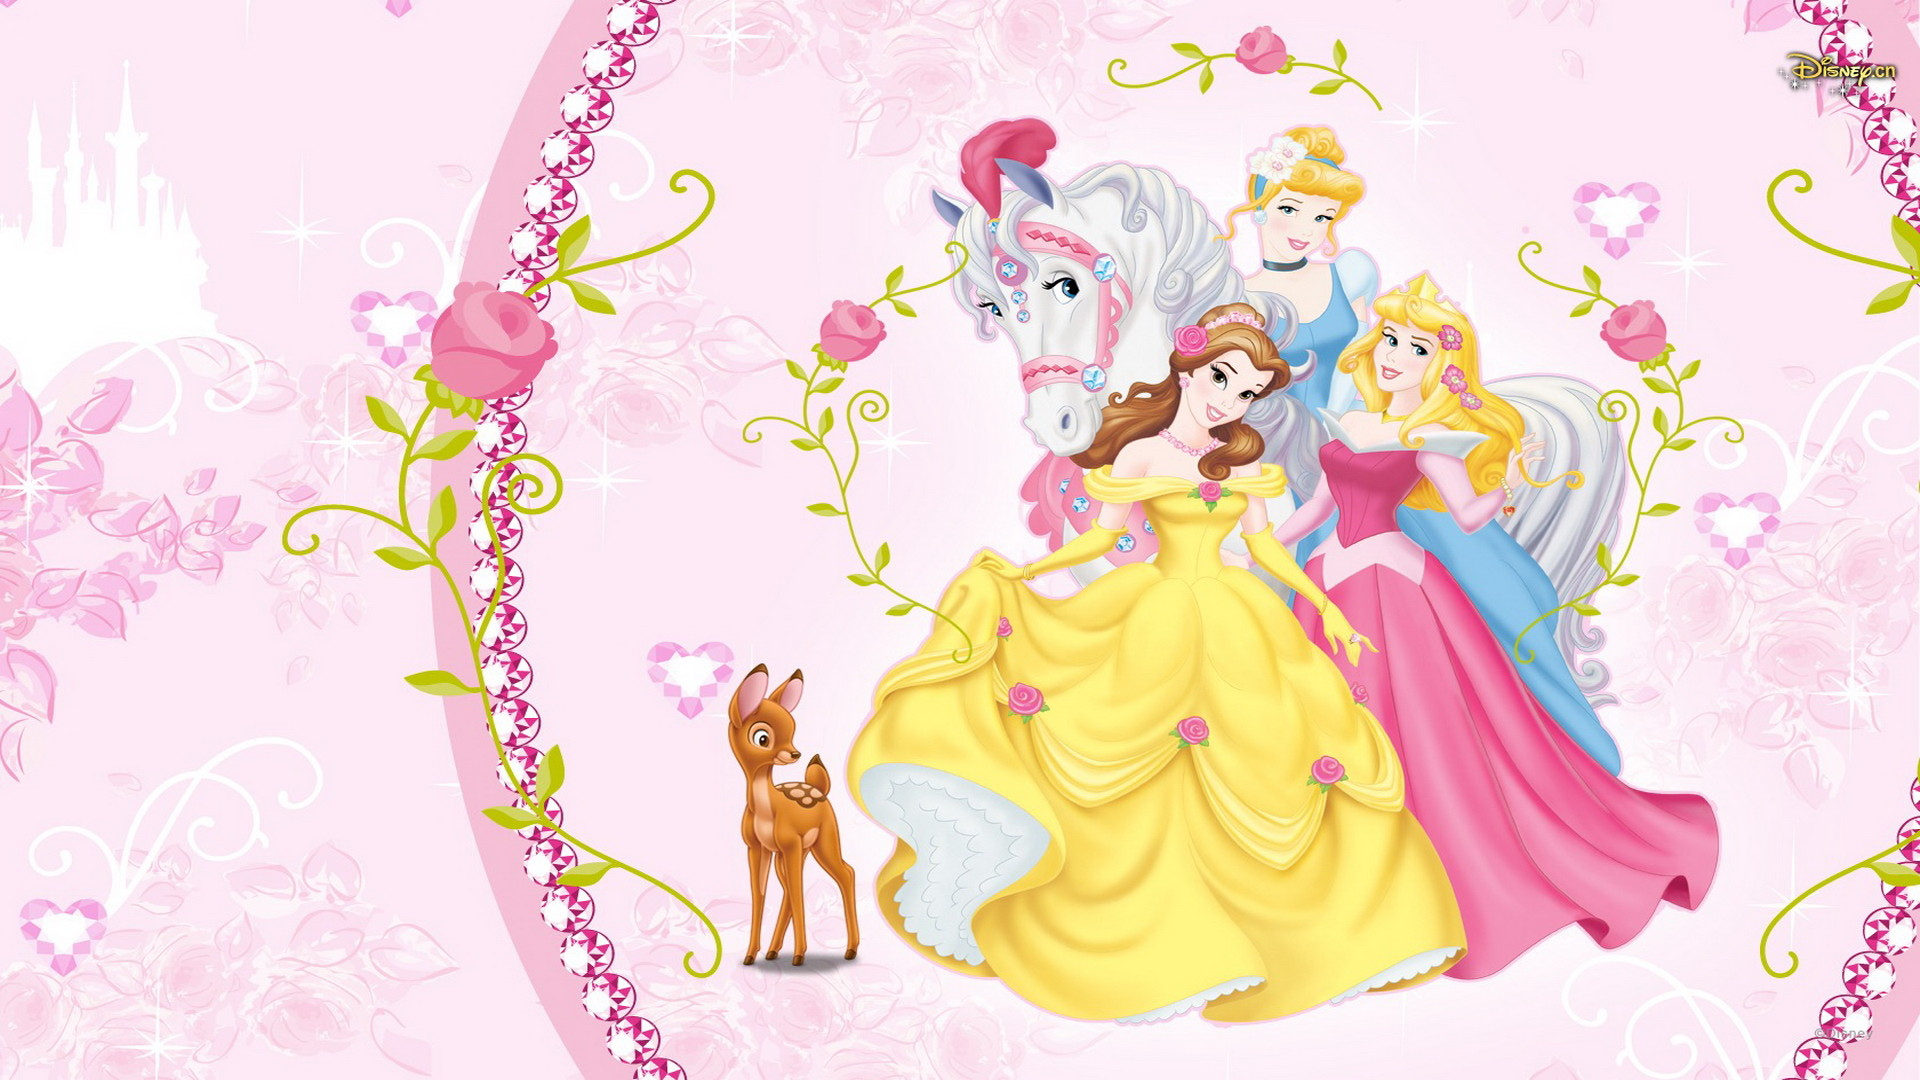 1920x1080 Beautiful Disney Princess Aurora, Belle and Cinderella Wallpaper